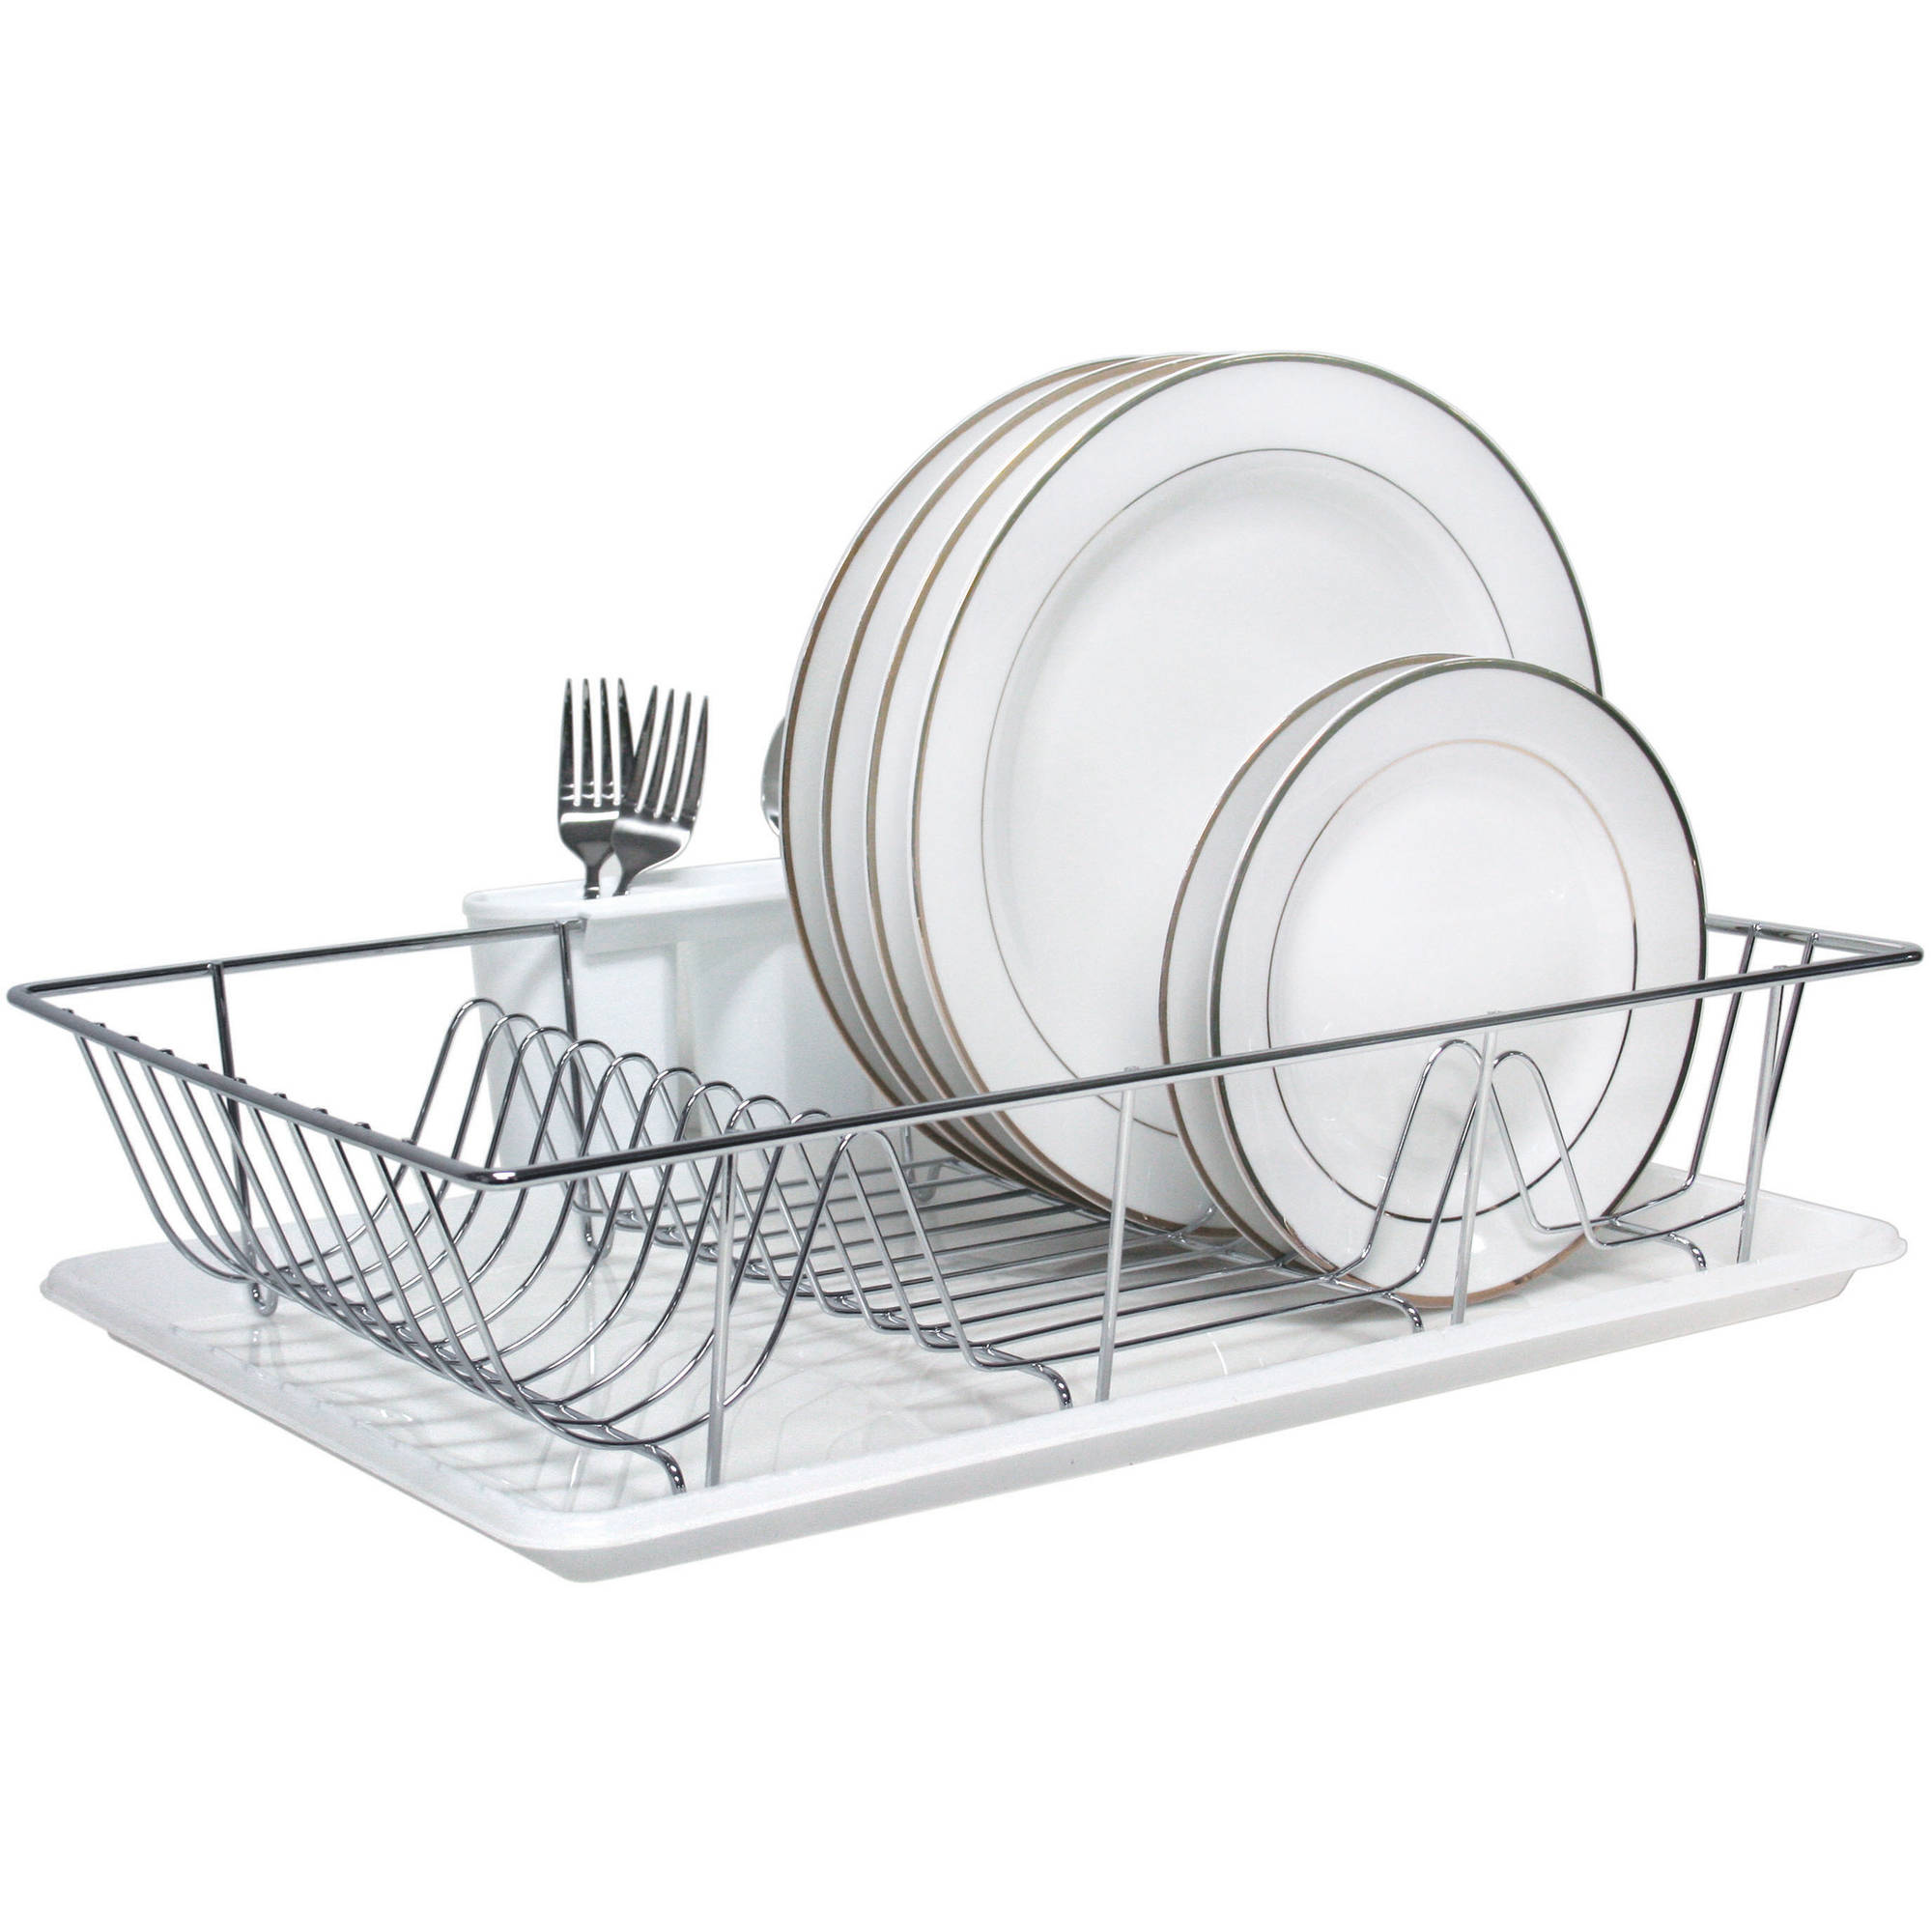 Kitchen Details, 3-Piece Chrome Dish Rack Set